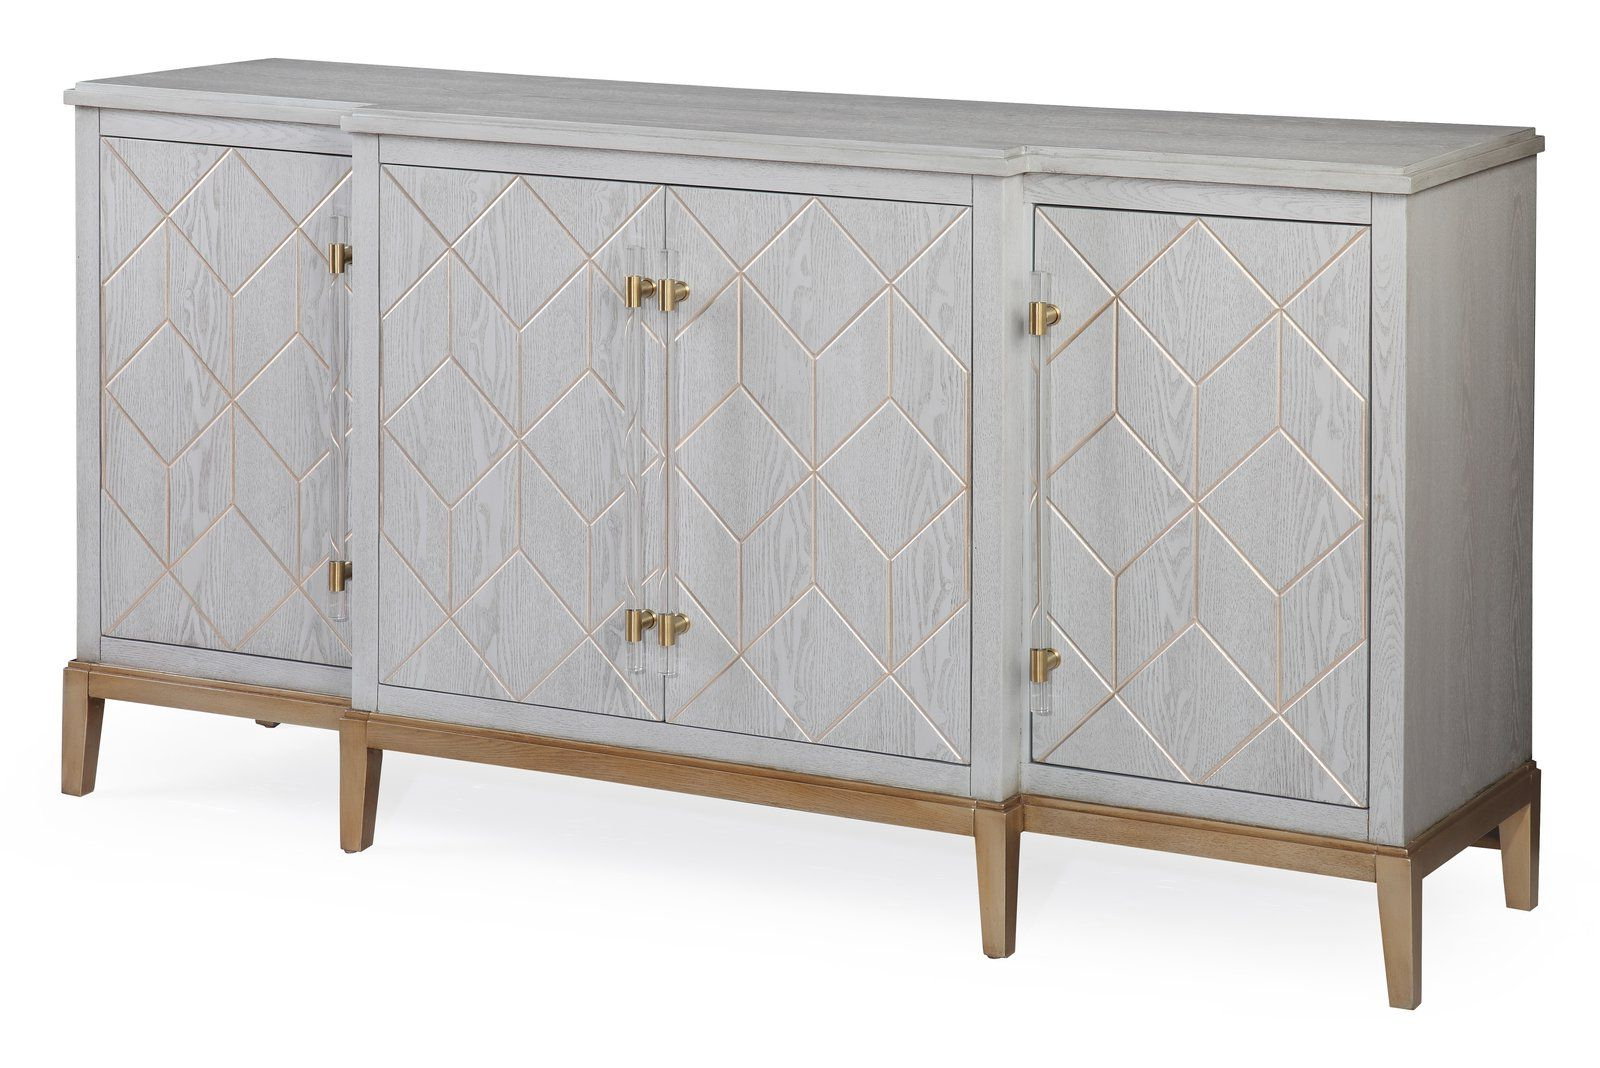 Rosson Sideboard | Dressers & Console Tables | Dining Room Within Rosson Sideboards (View 12 of 20)